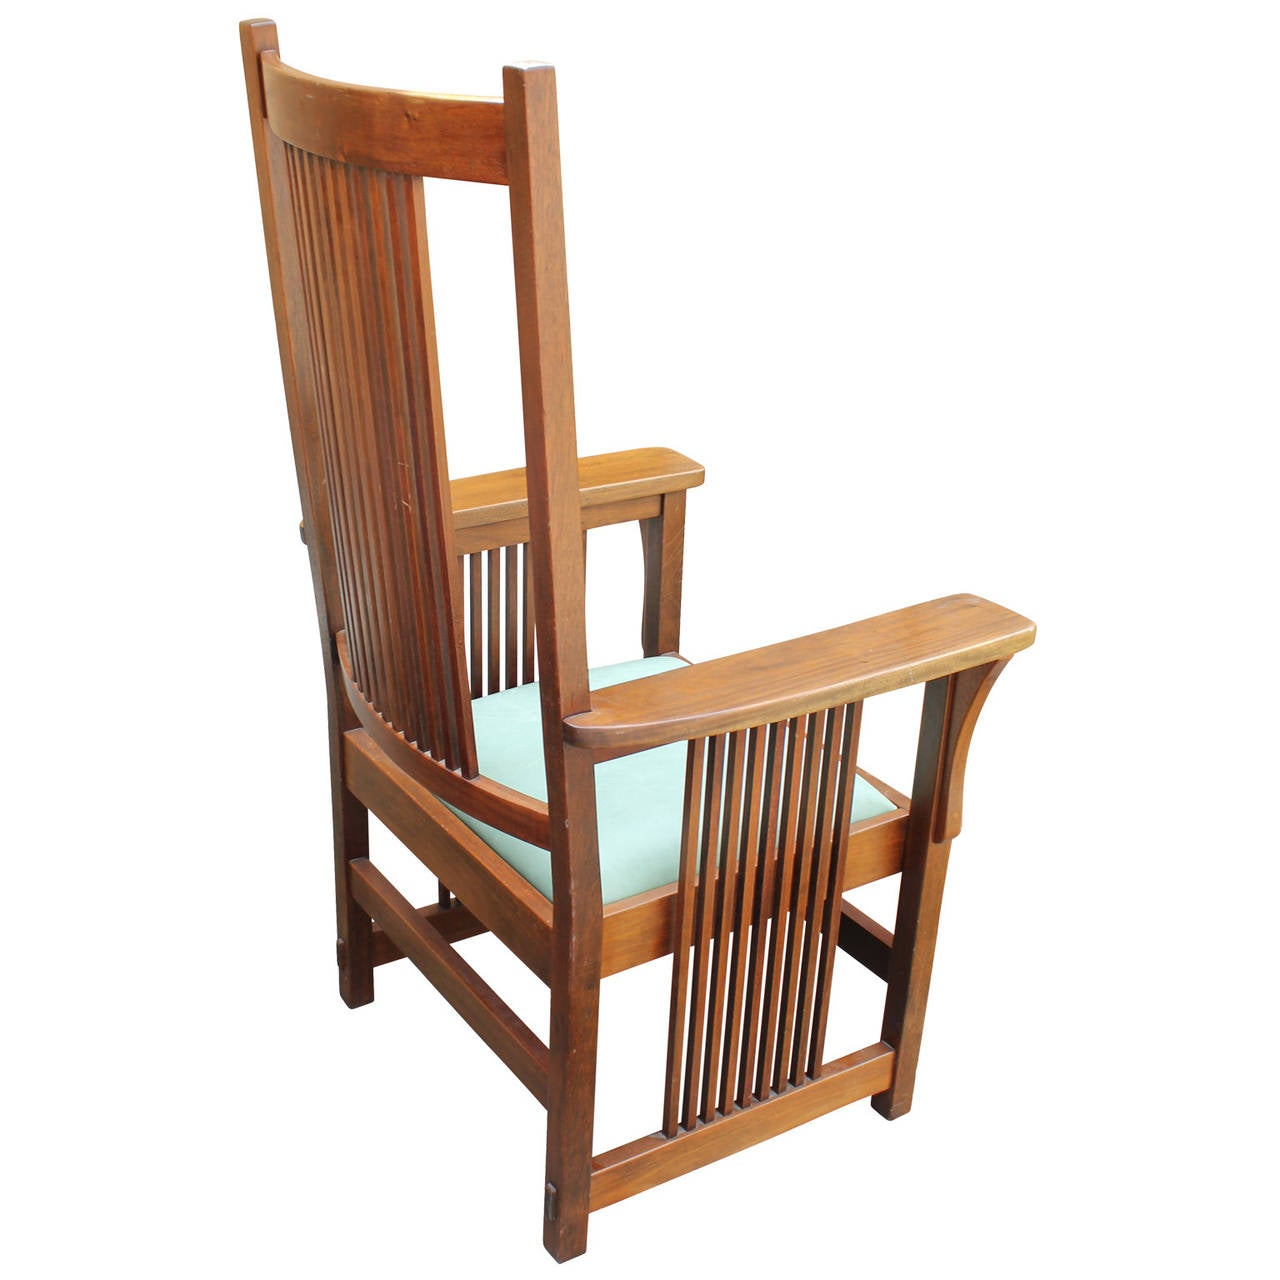 frank lloyd wright style armchair at 1stdibs in l a a wright house at auction huffpost